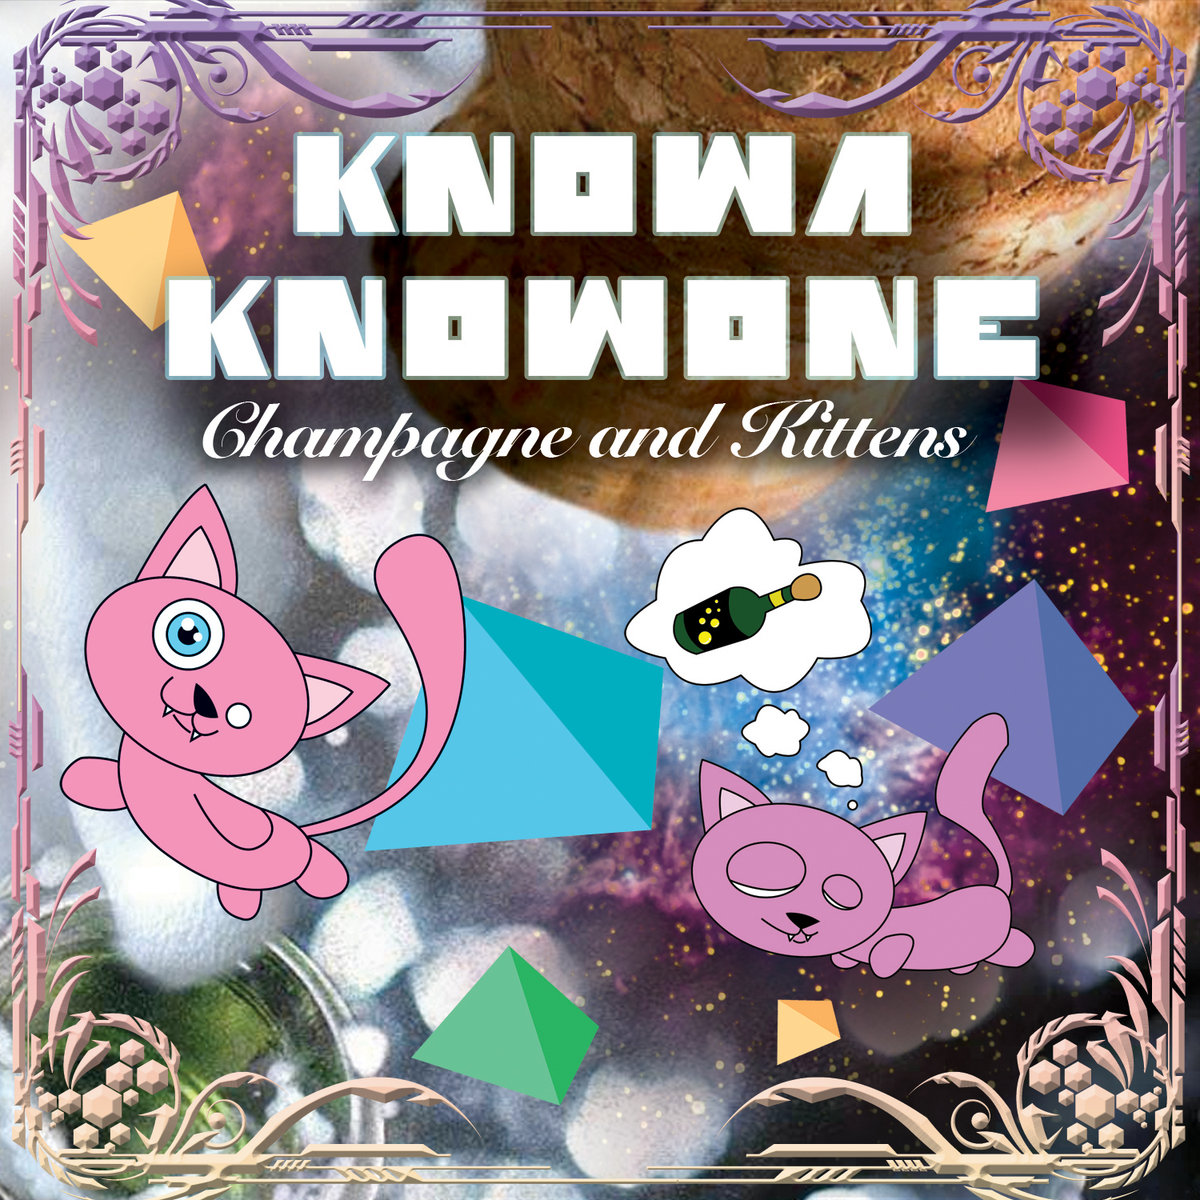 Knowa Knowone - Dance of Thorns @ 'Champagne and Kittens' album (bass, electronic)